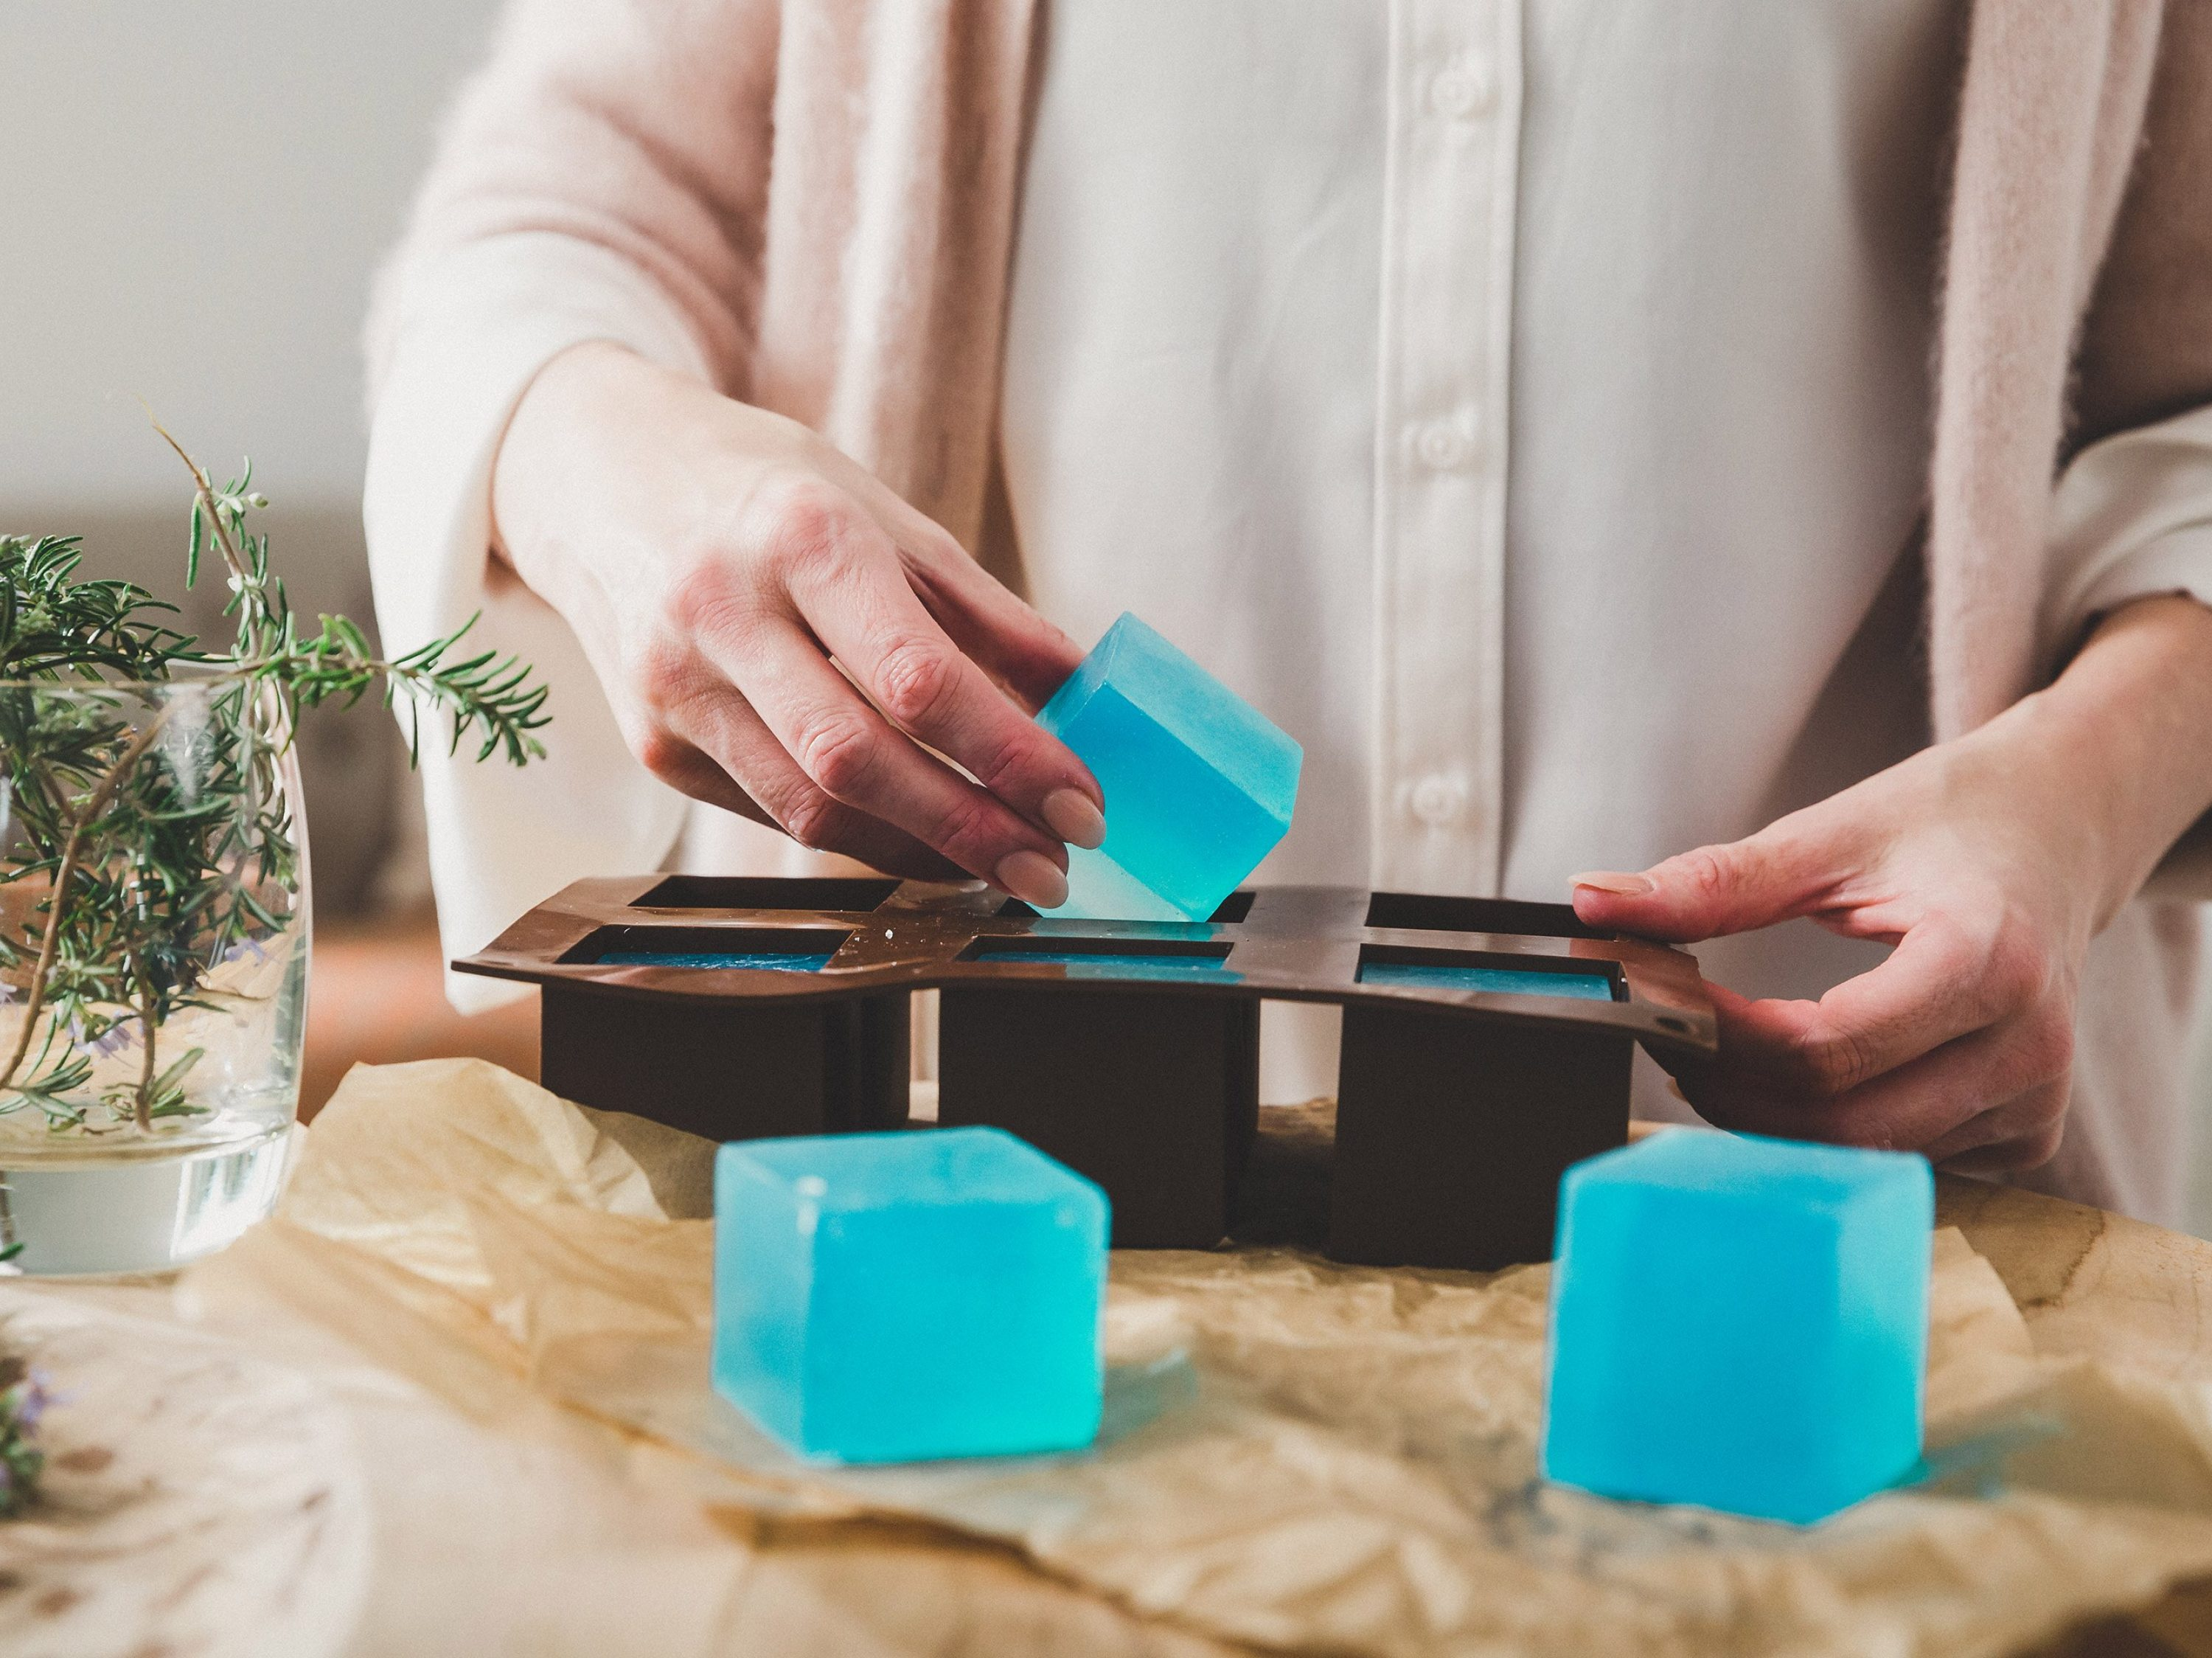 Woman in pink cardigan removing fresh soap cubes from their mould.